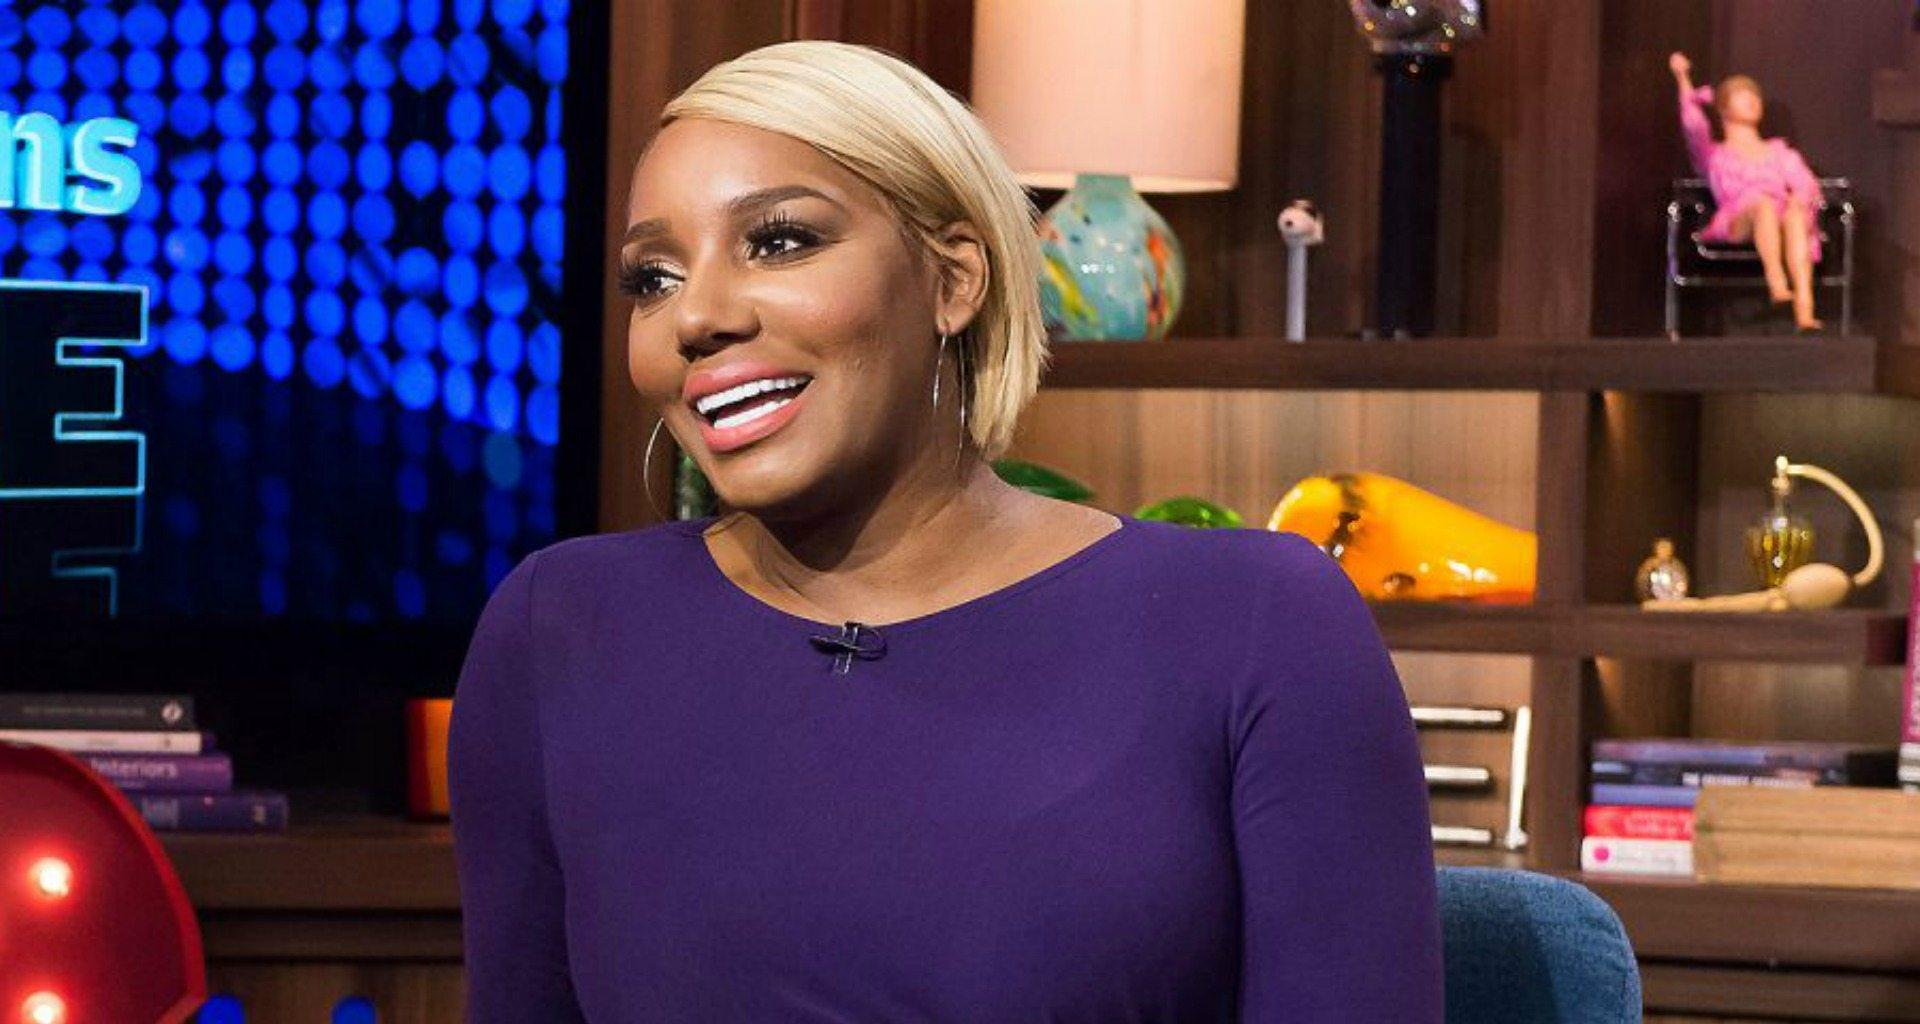 NeNe Leakes Surprises Fans Showing Them Who Shopped At Her Swagg Boutique At MGM